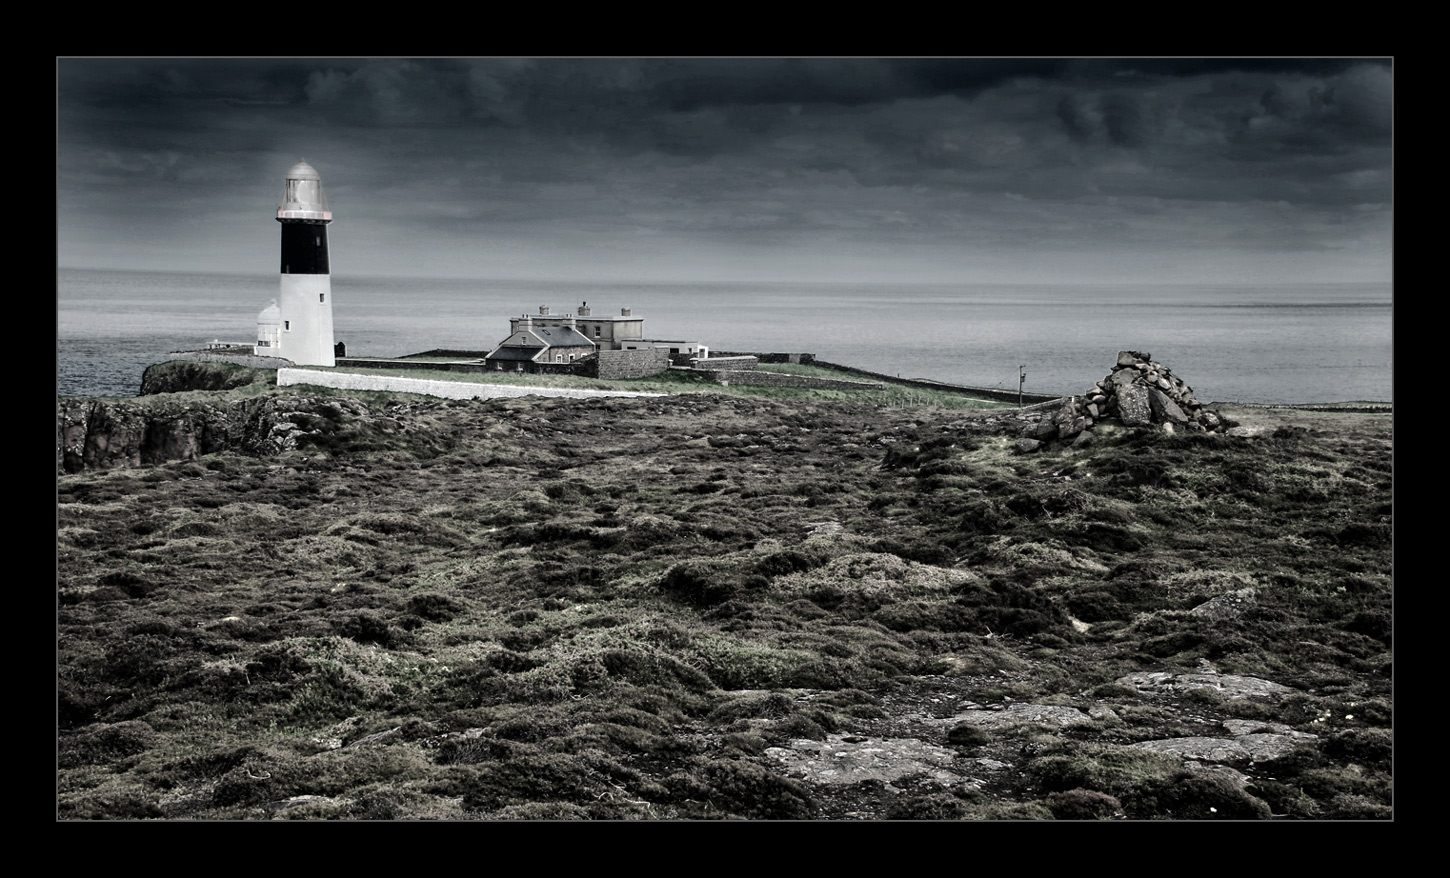 East Lighthouse, Rathlin Island